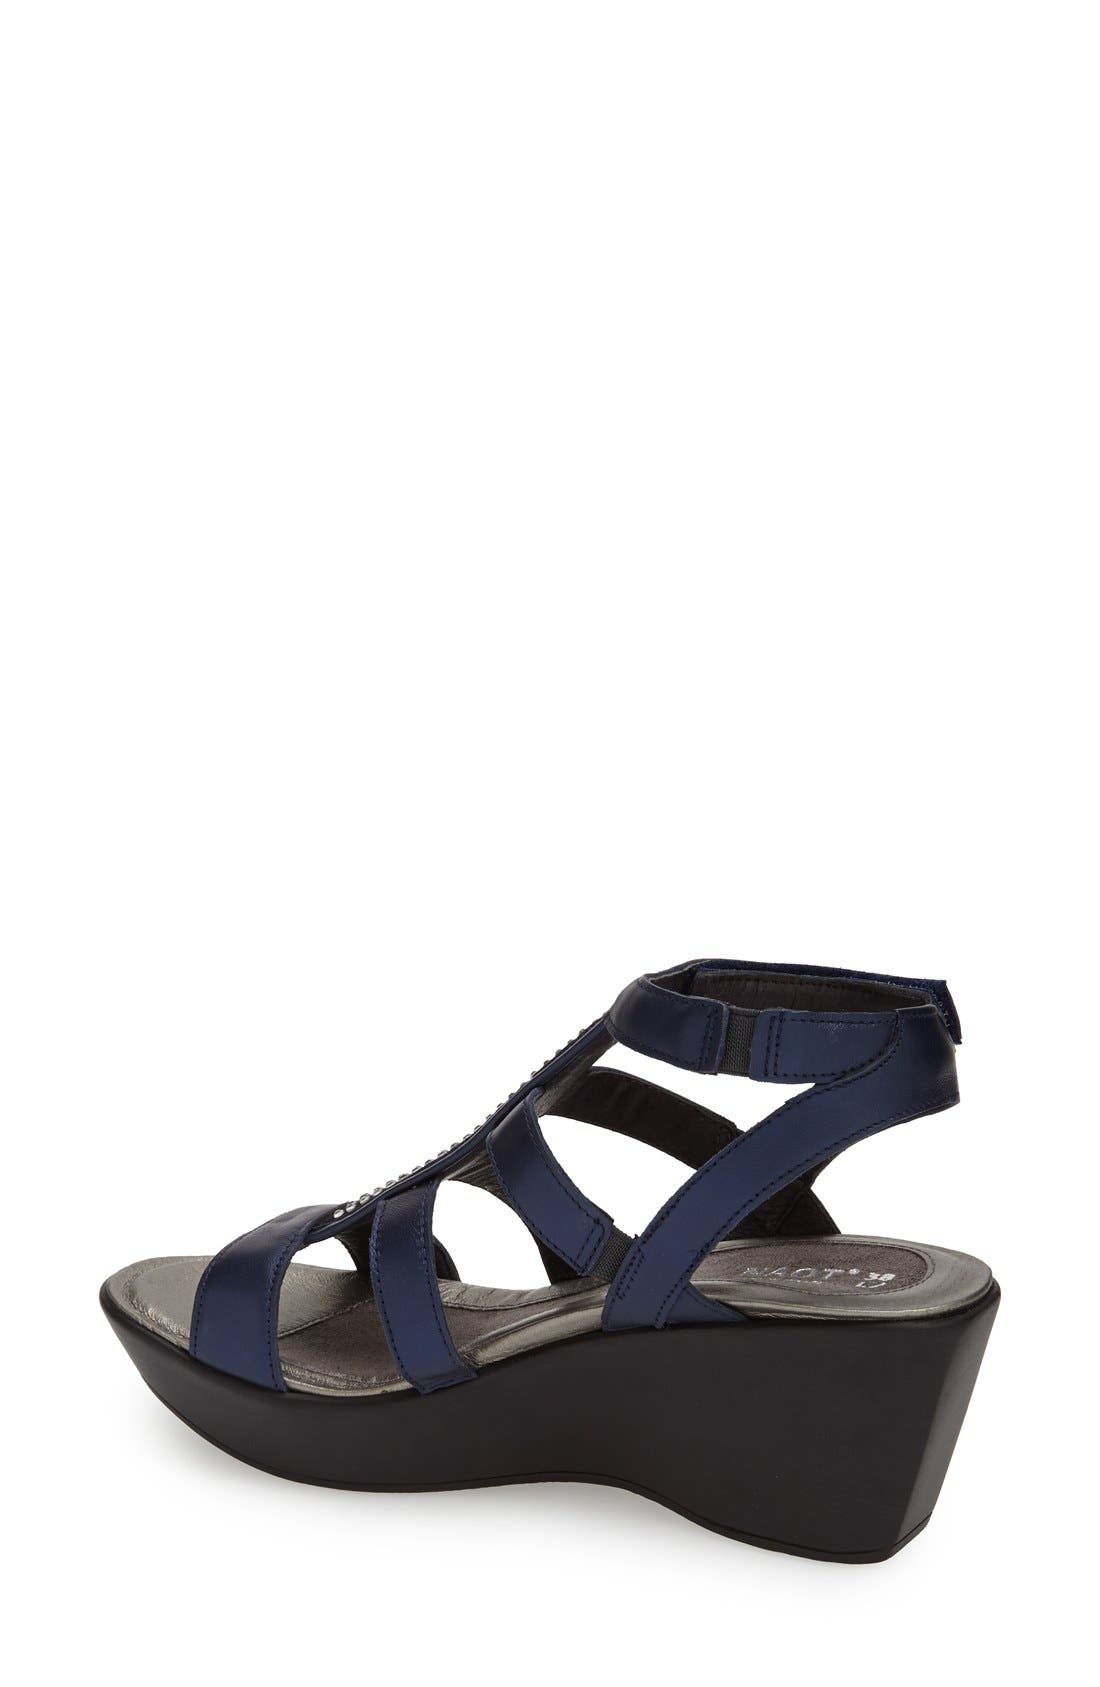 'Mystery' Platform Wedge Sandal,                             Alternate thumbnail 18, color,